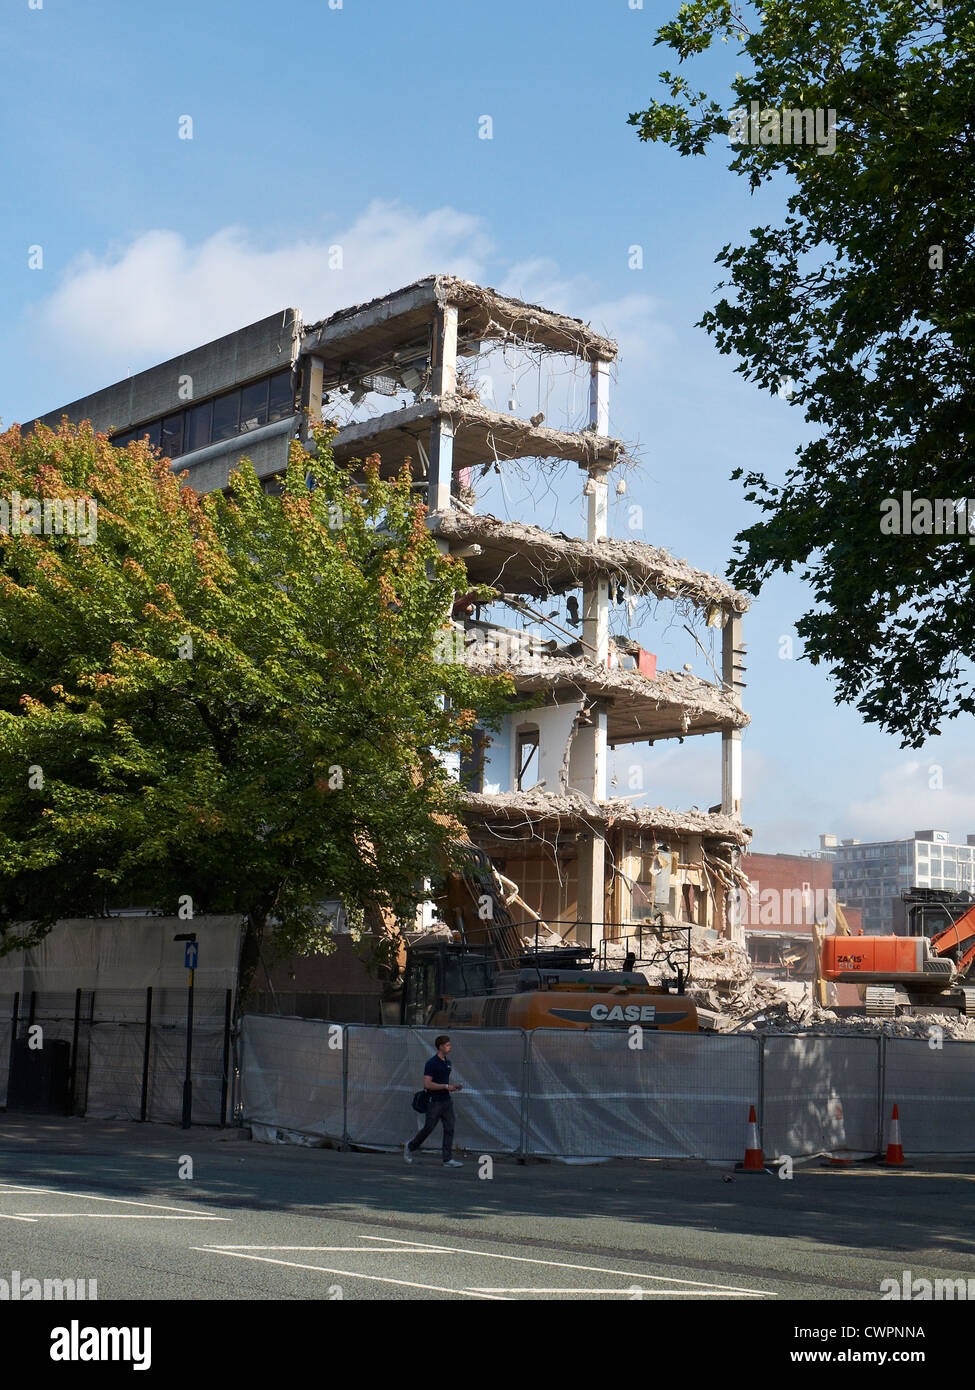 Demolition of BBC New Broadcasting House on Oxford Road in Manchester UK - Stock Image